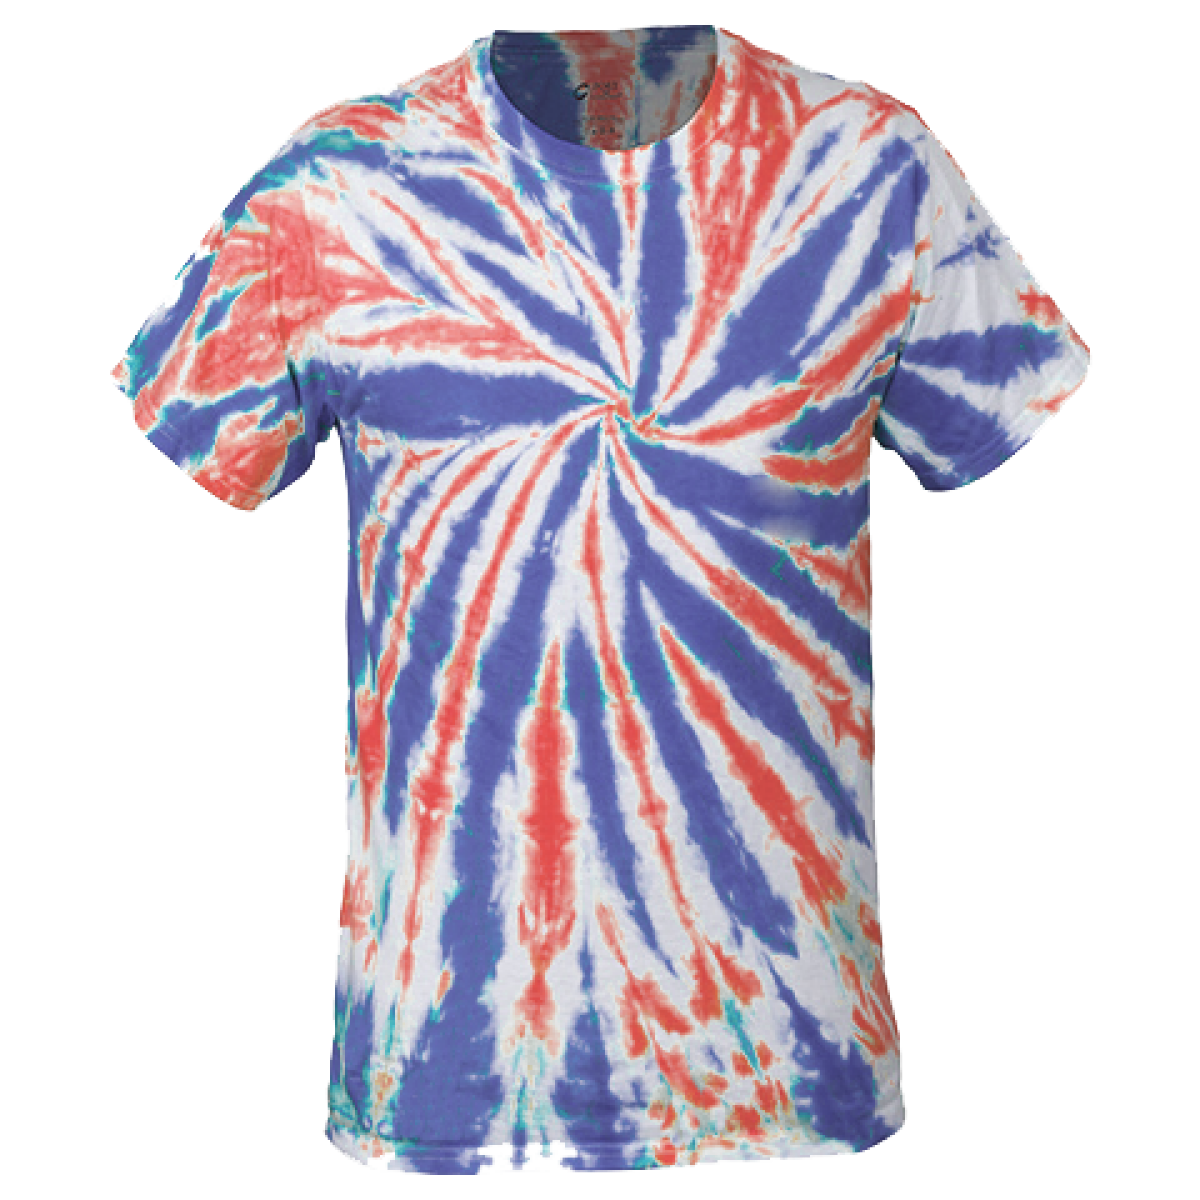 Multi-Color Tie-Dye Tee -Red/White/Blue-M